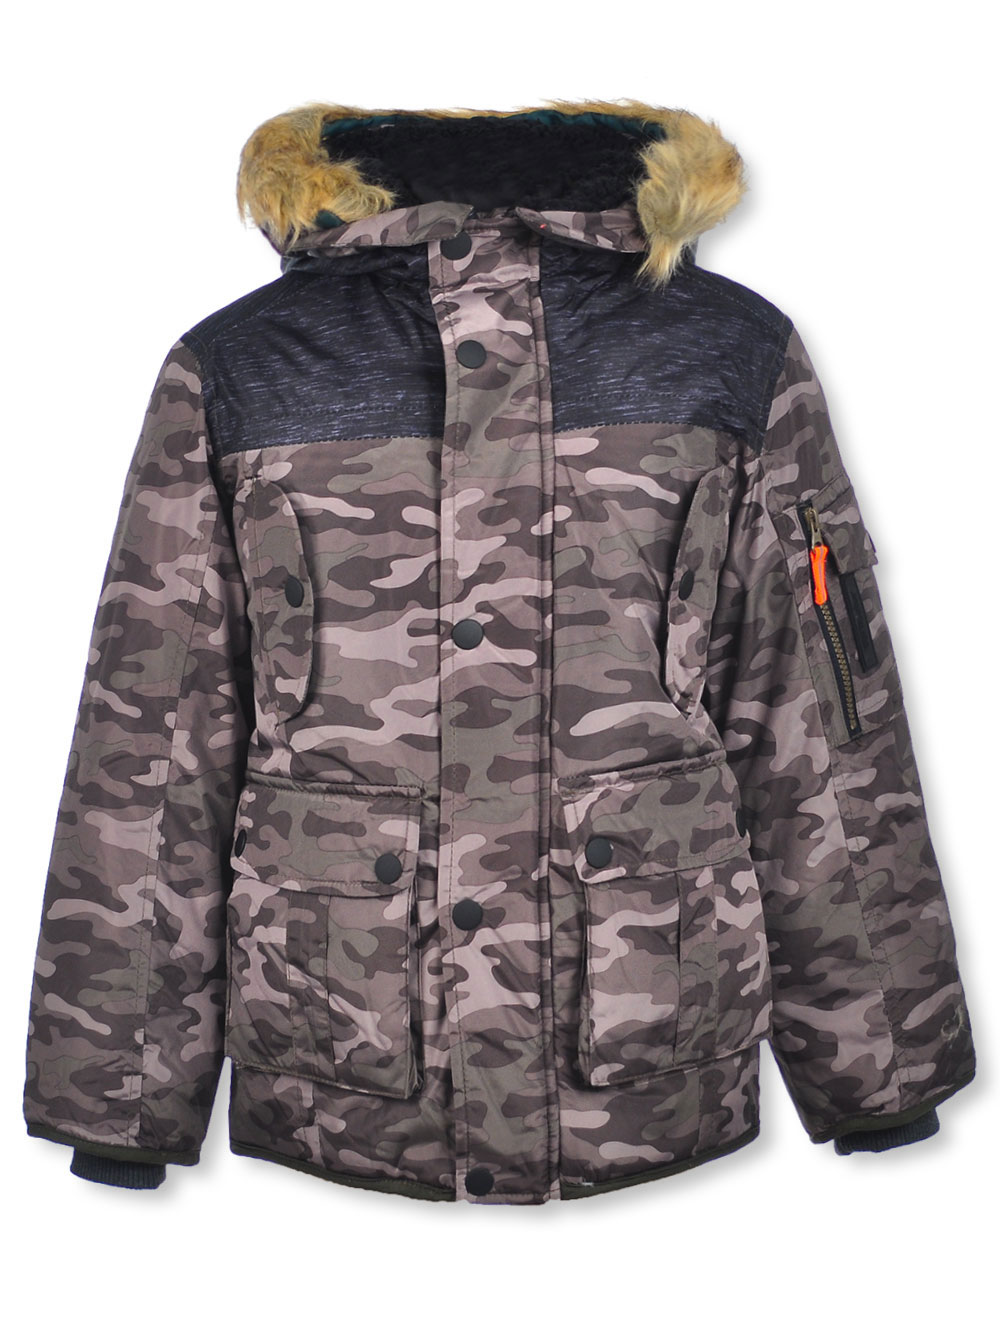 London Fog Toddler Boys Green Camo Hooded Coat Size 2T 4T